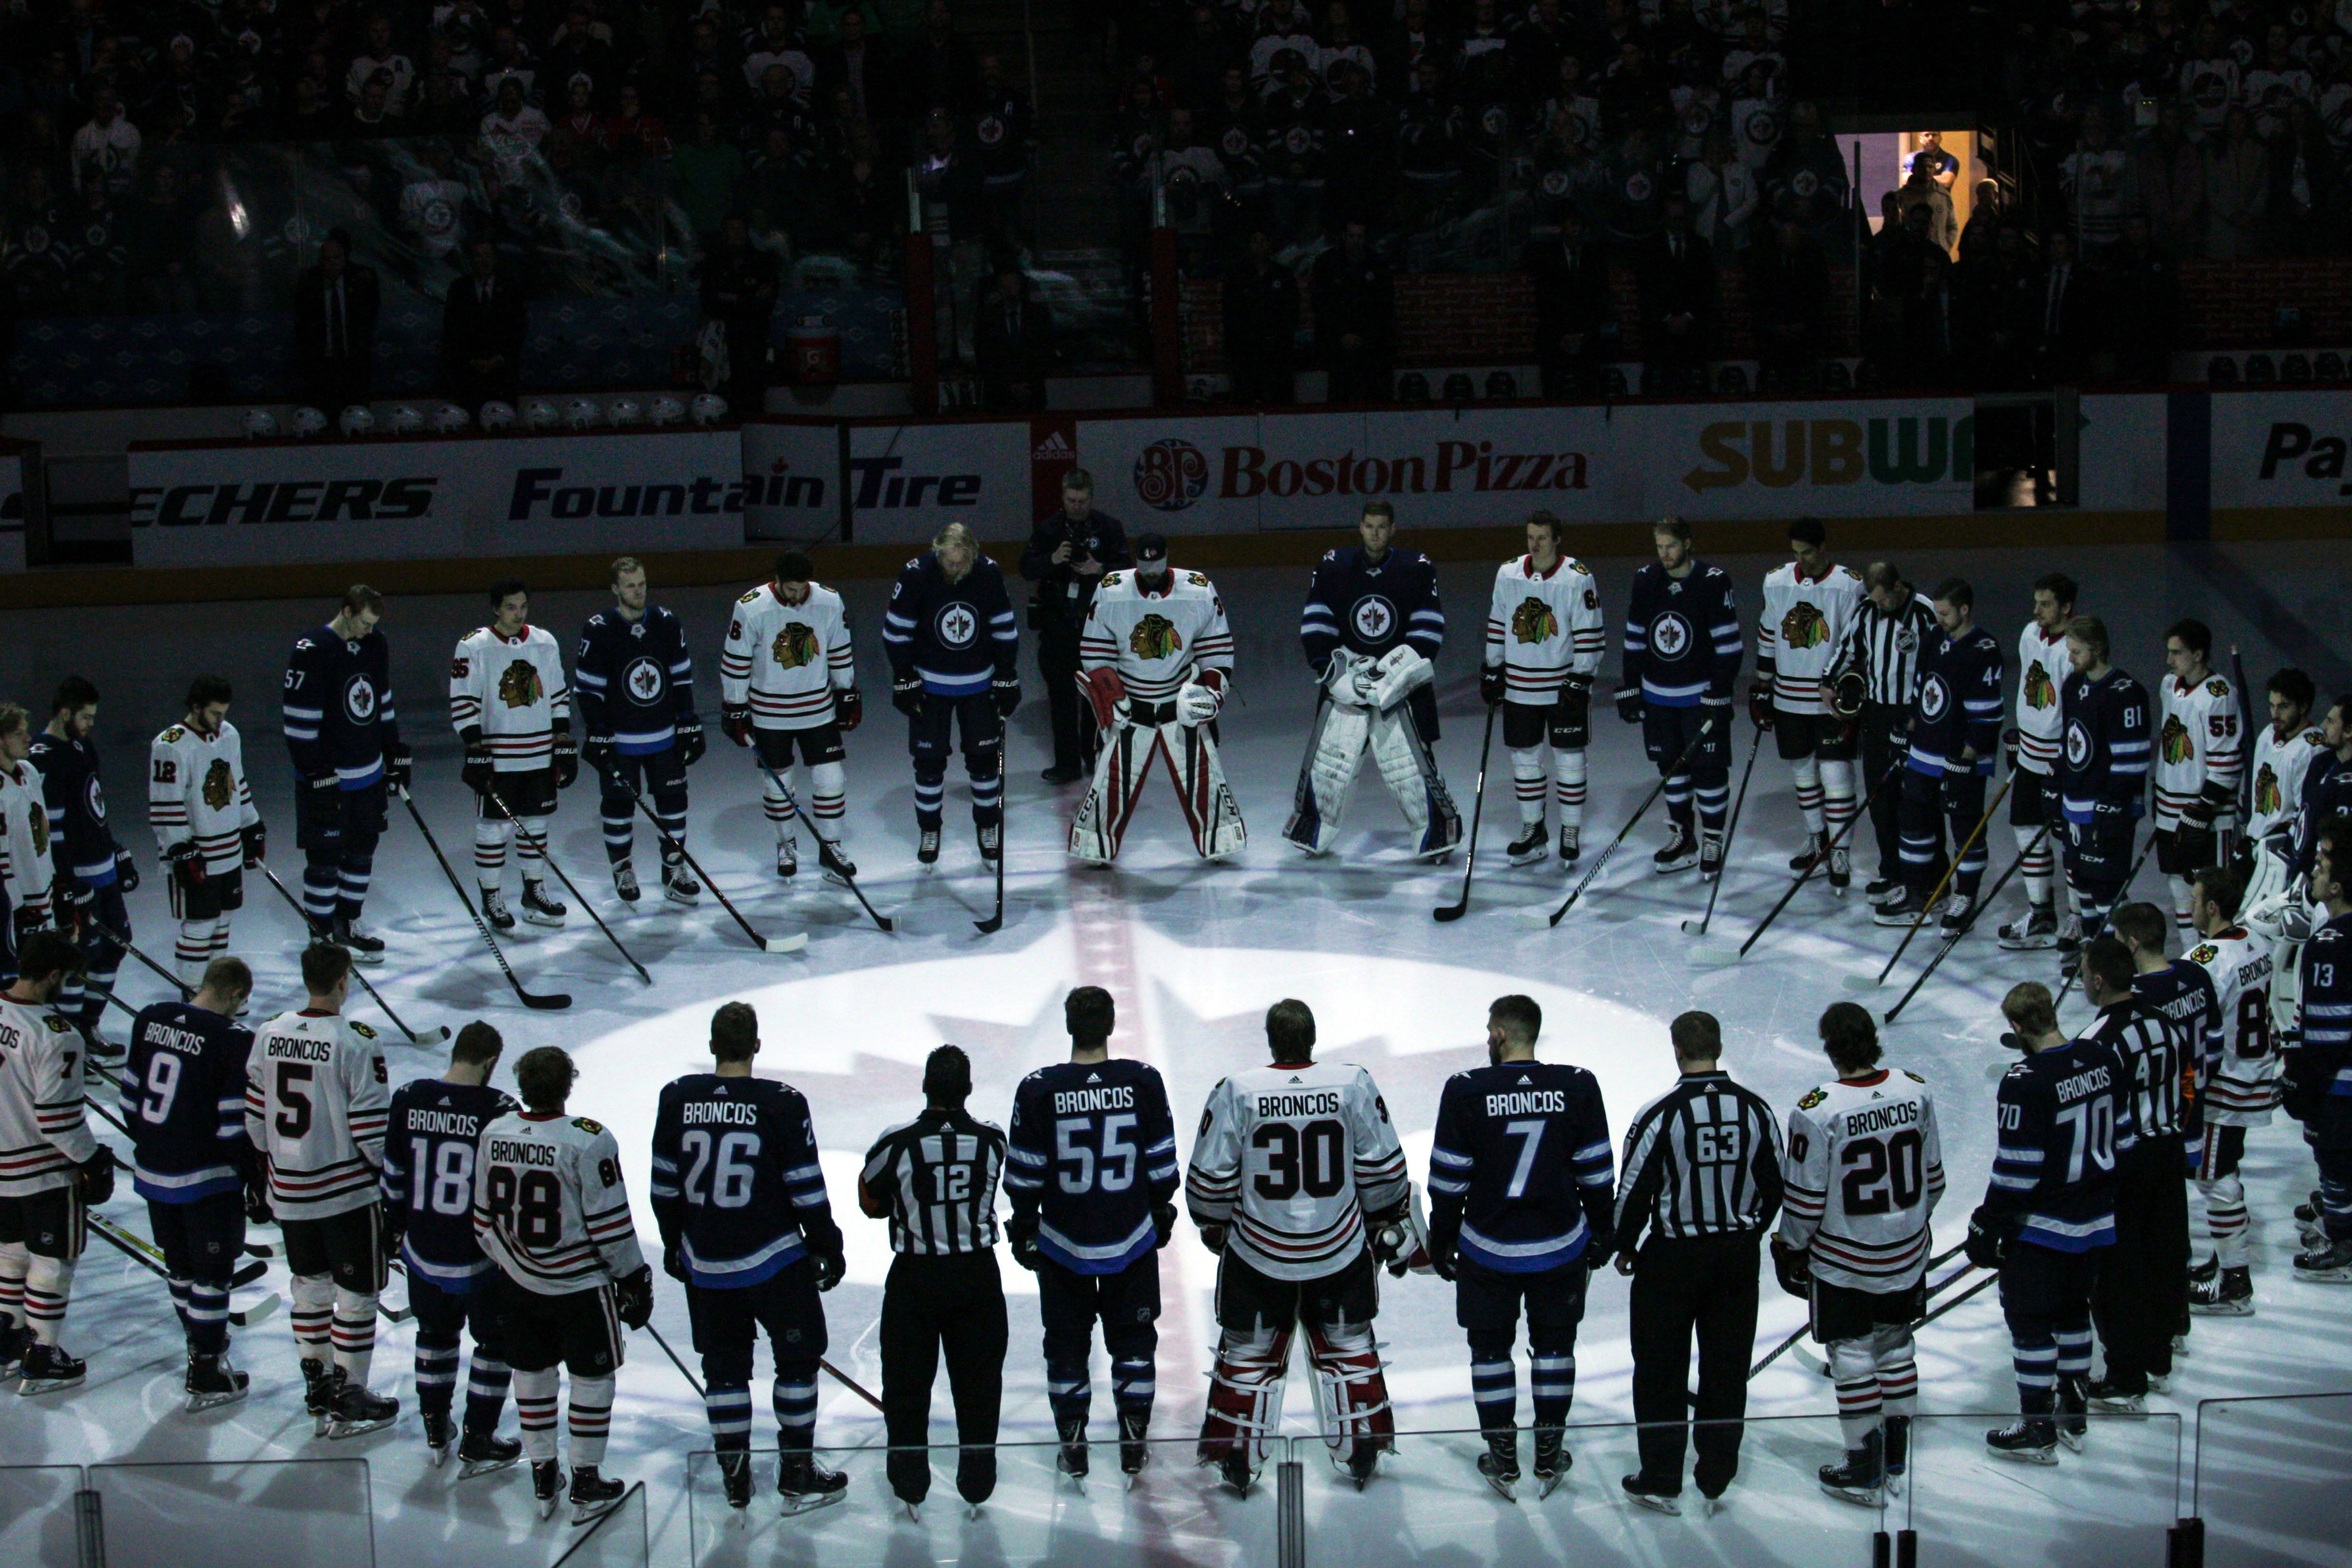 Apr 7, 2018; Winnipeg, Manitoba, CAN; The Winnipeg Jets and Chicago Blackhawks observe a minute of silence for the Humbolt Broncos before the first period at Bell MTS Place. Mandatory Credit: Terrence Lee-USA TODAY Sports